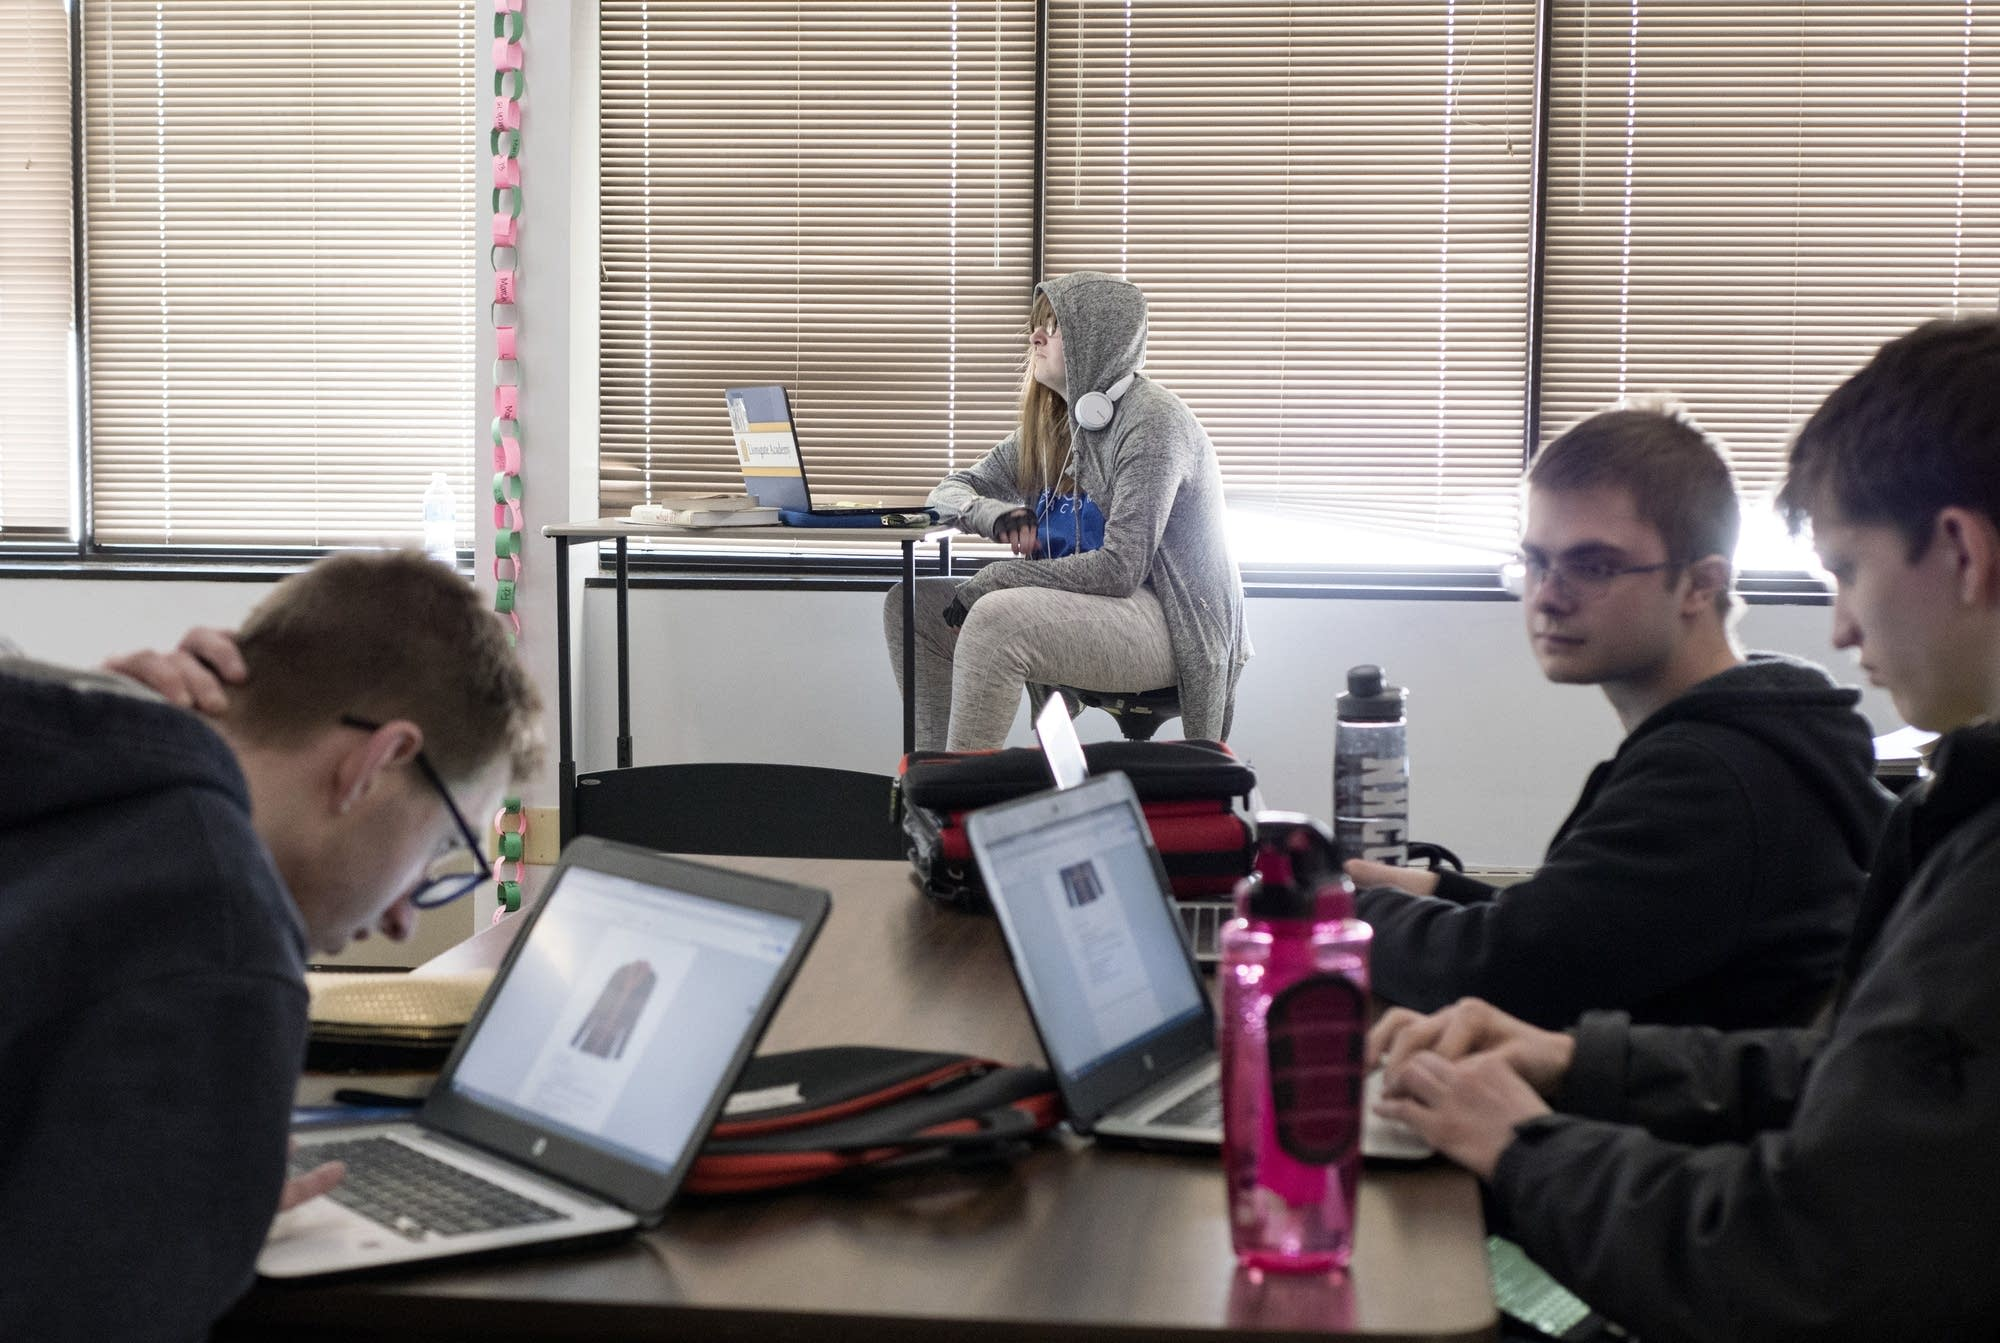 Students work in a group while Raina Sellnow works on a solo assignment.